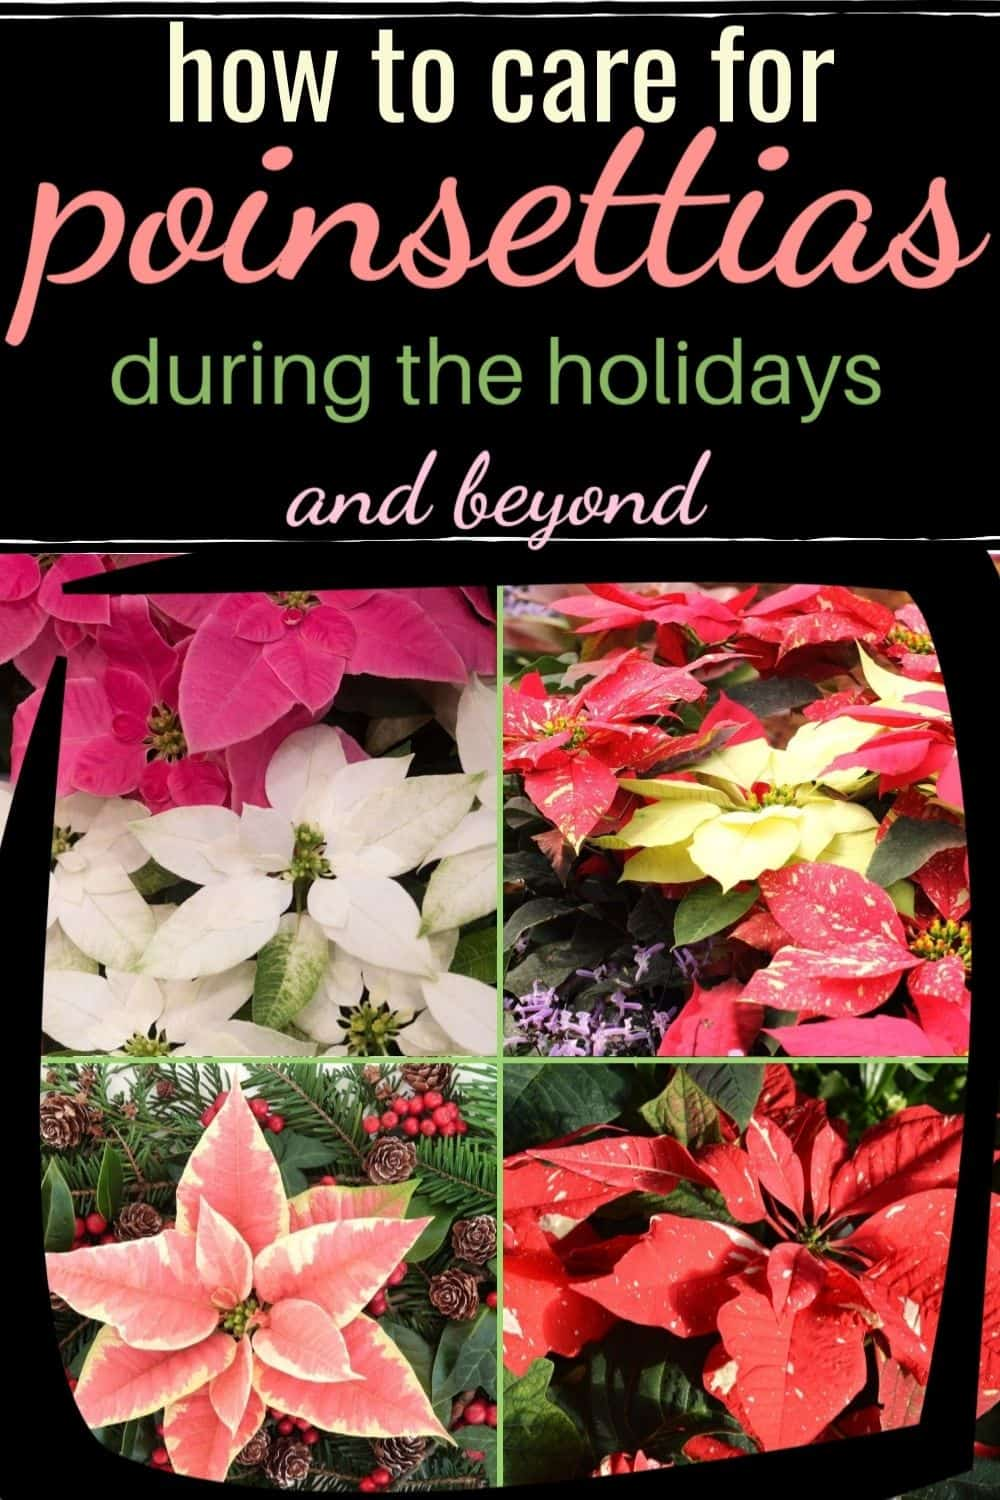 How to care for poinsettias during the holidays and beyond